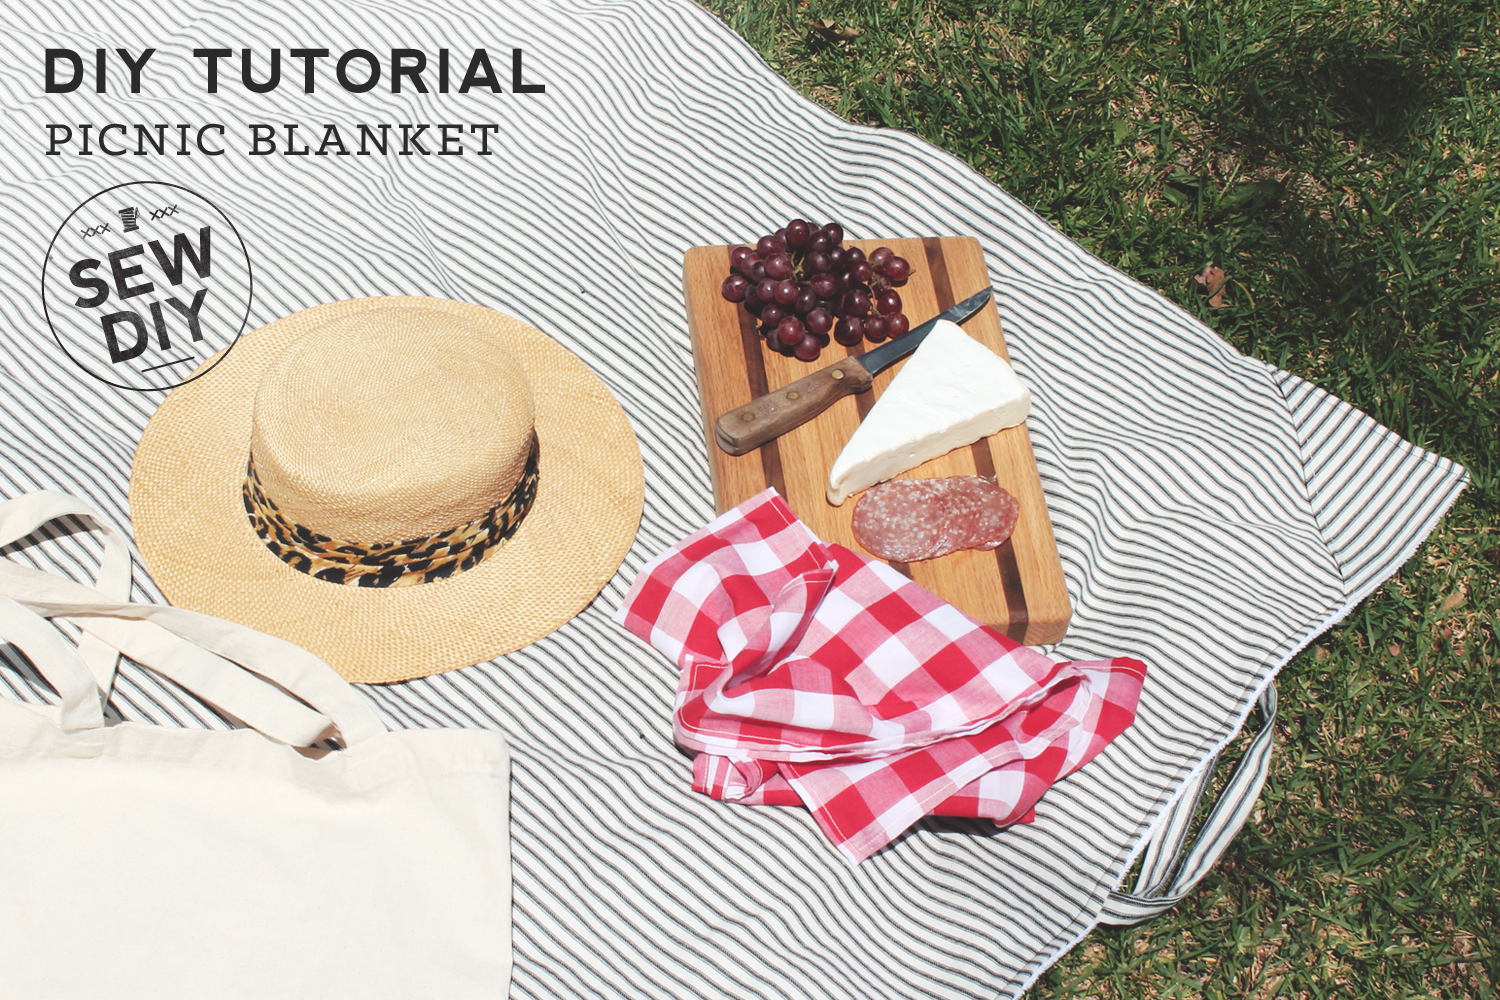 Easy DIY tutorial for making a picnic blanket. Sew DIY